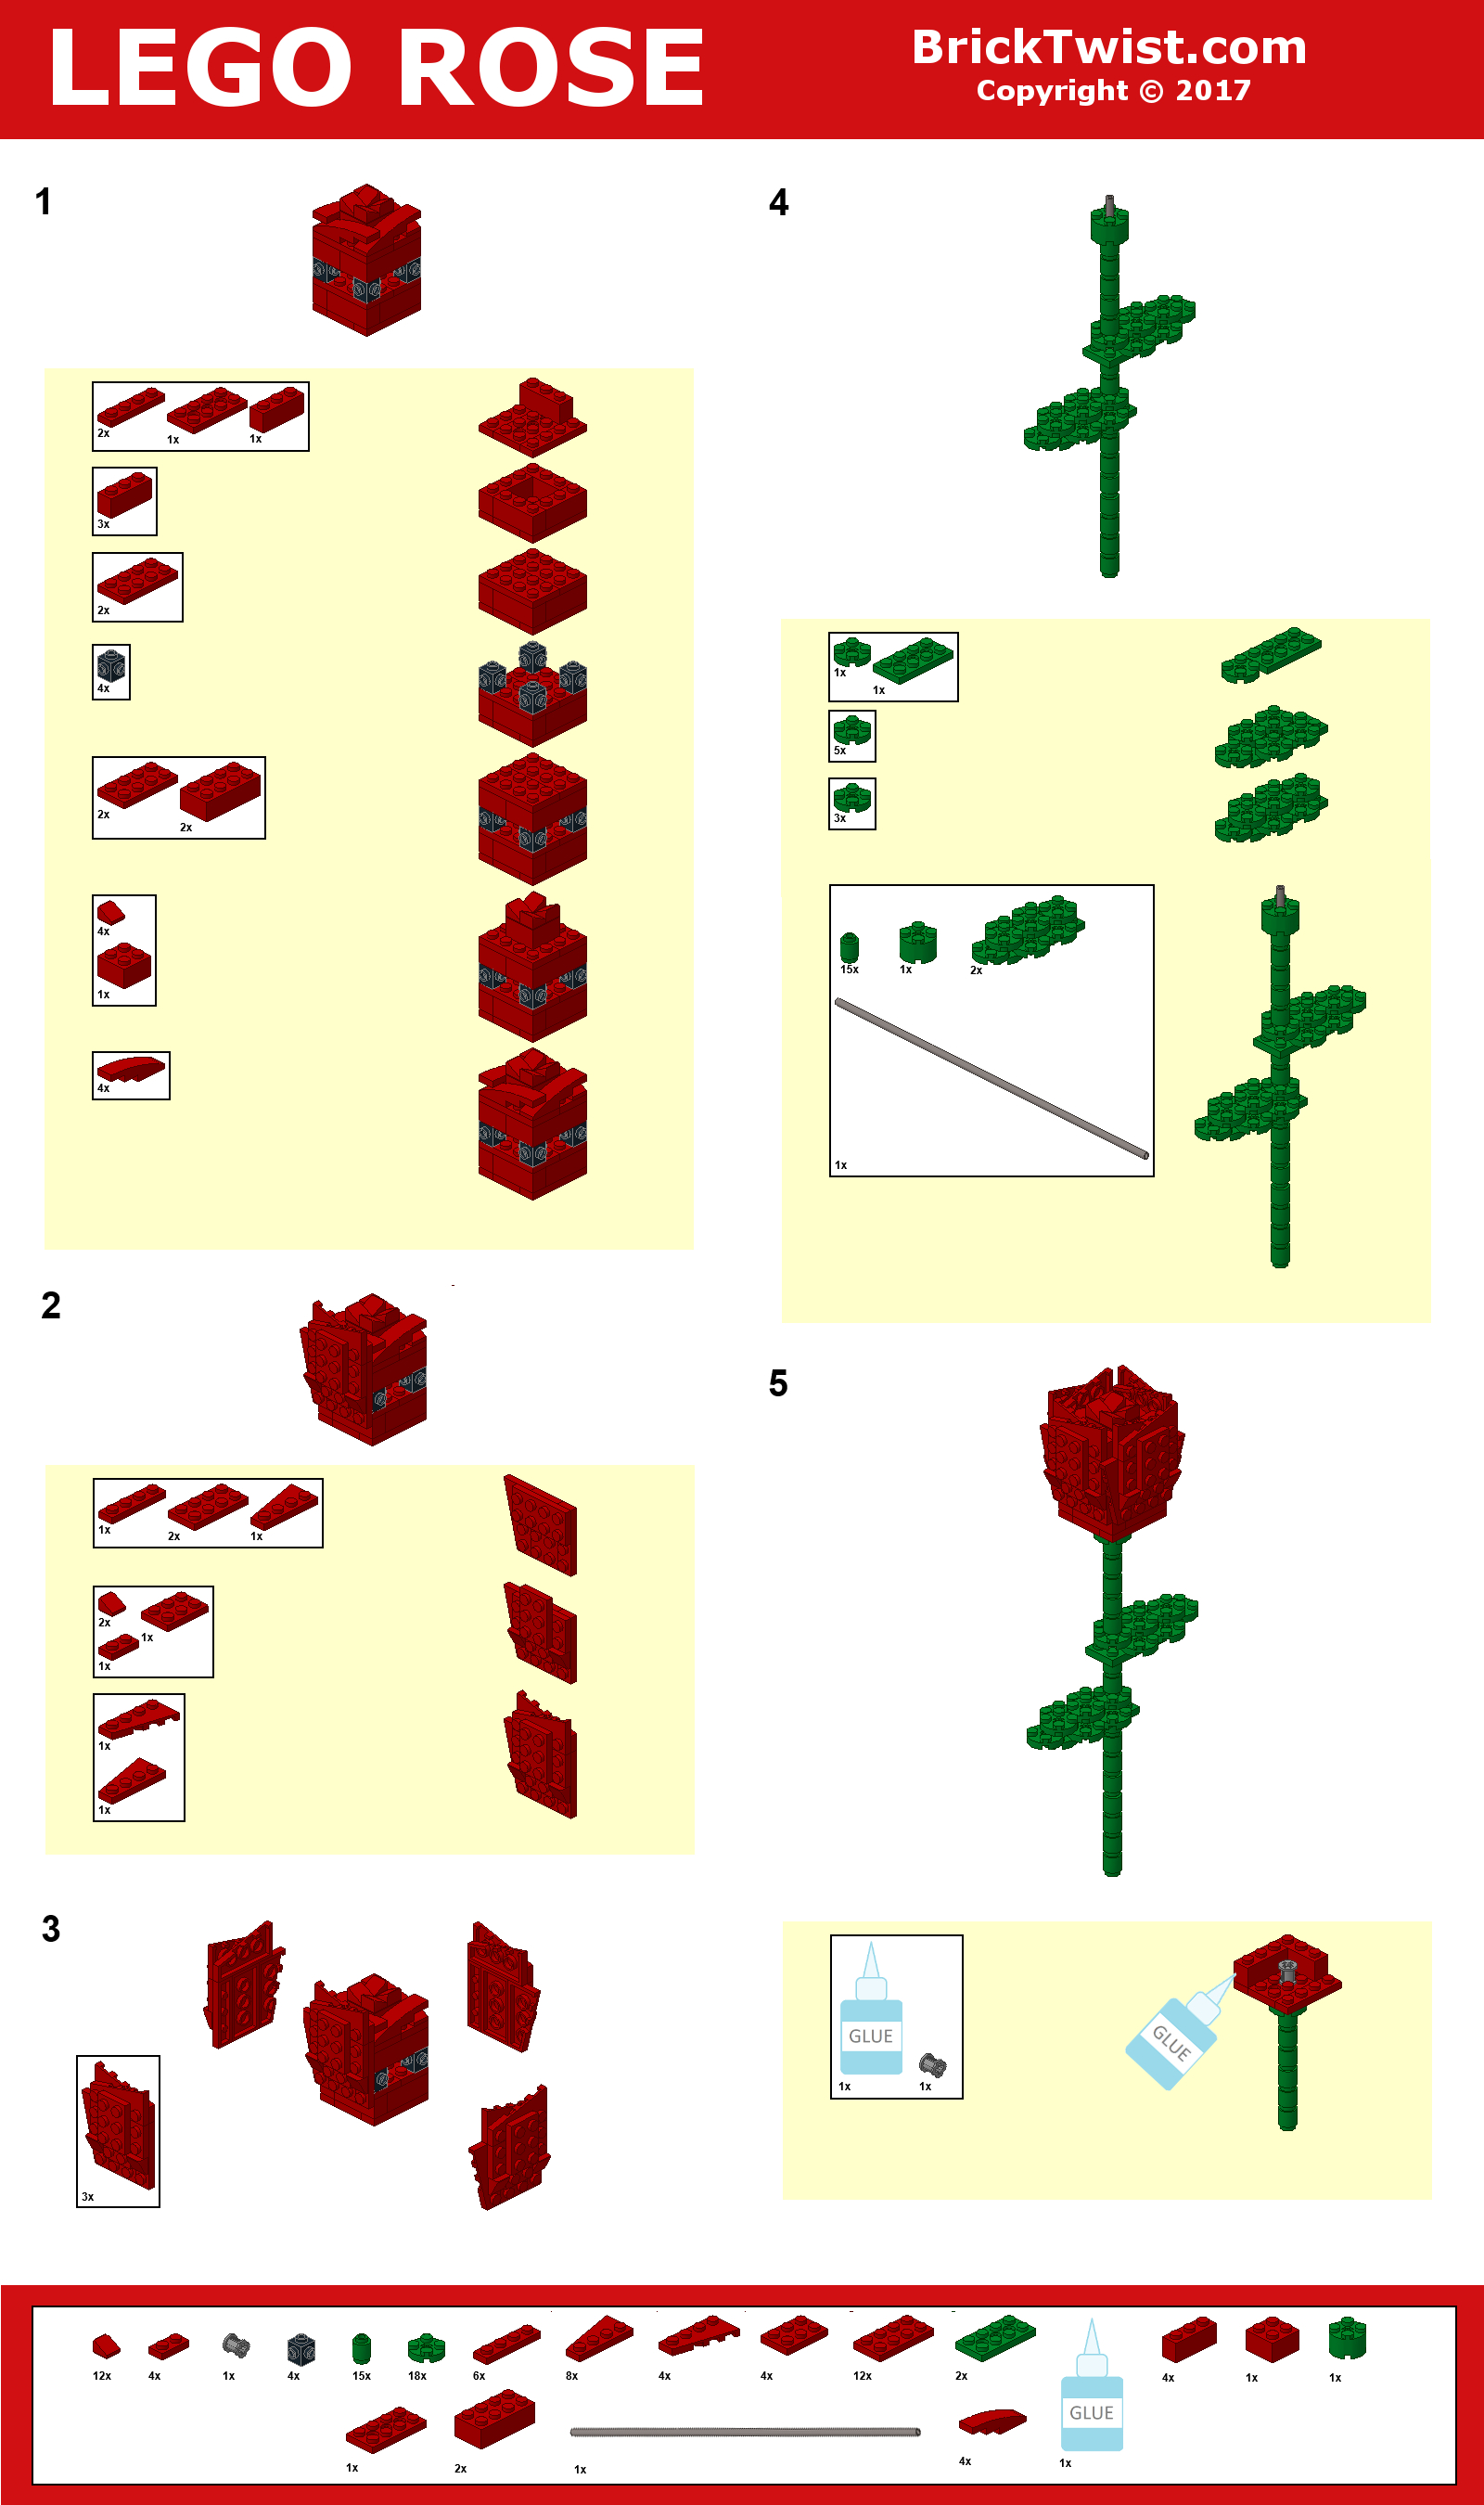 How To Build A Lego Rose Brick Twist